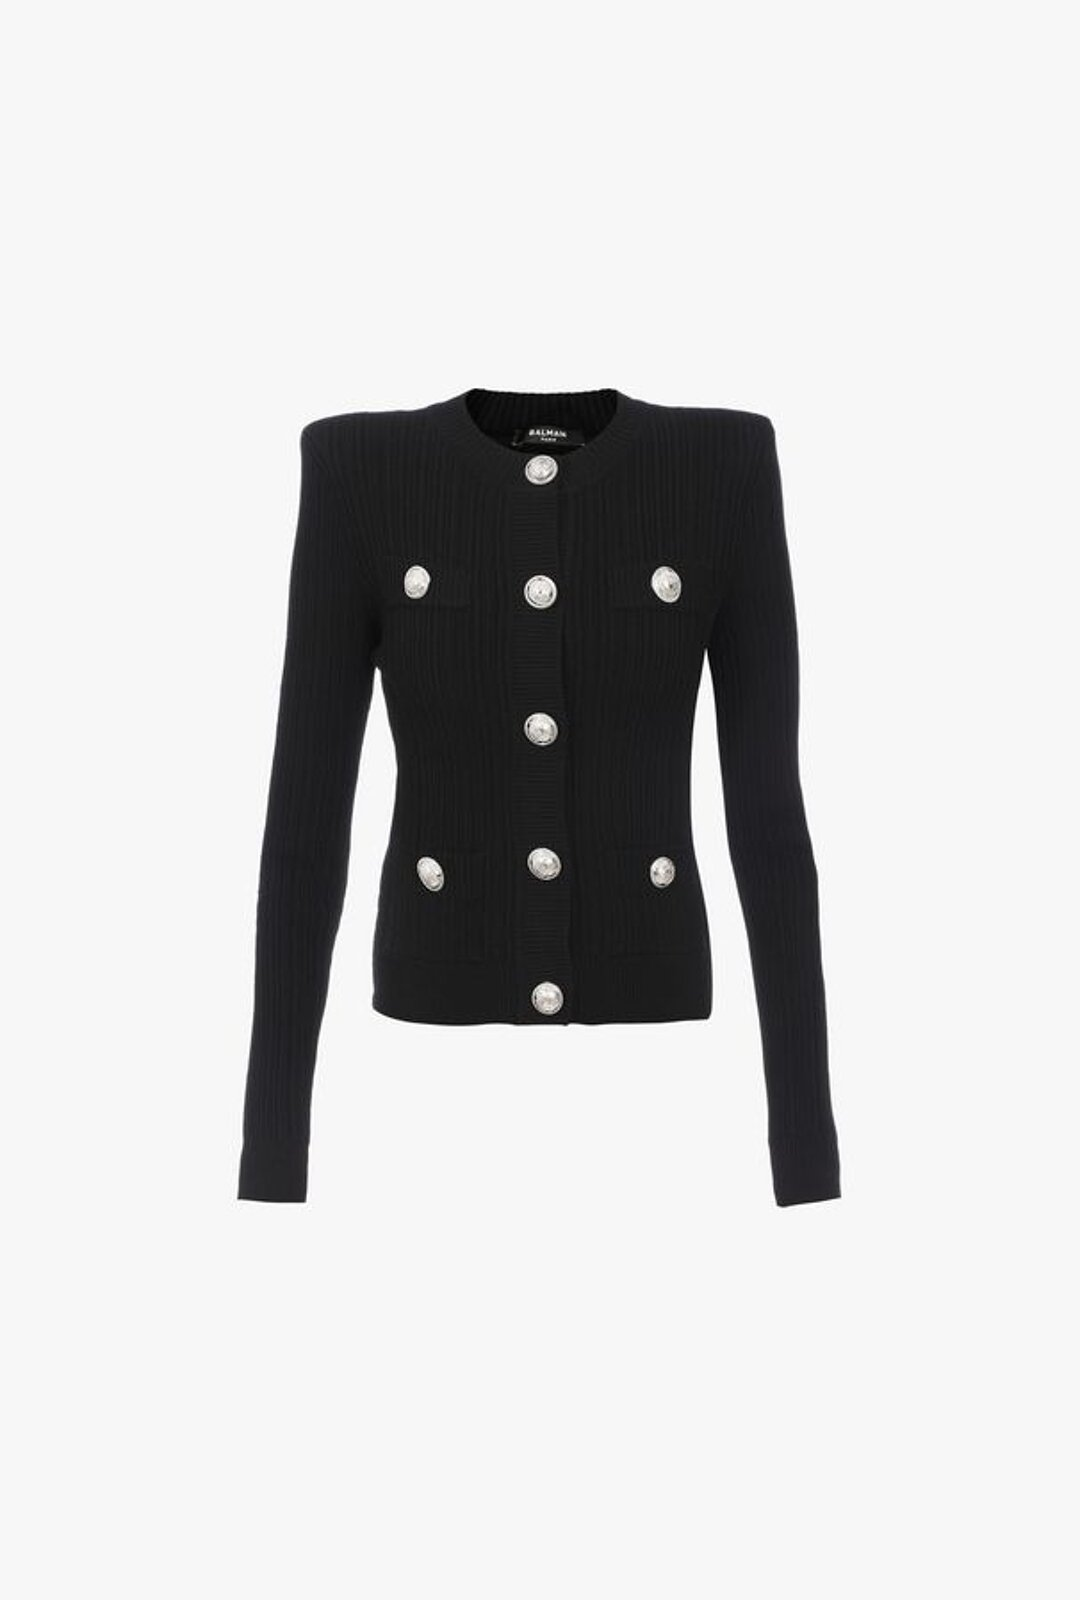 Black Knitted Cardigan With Silver Buttons - Balmain